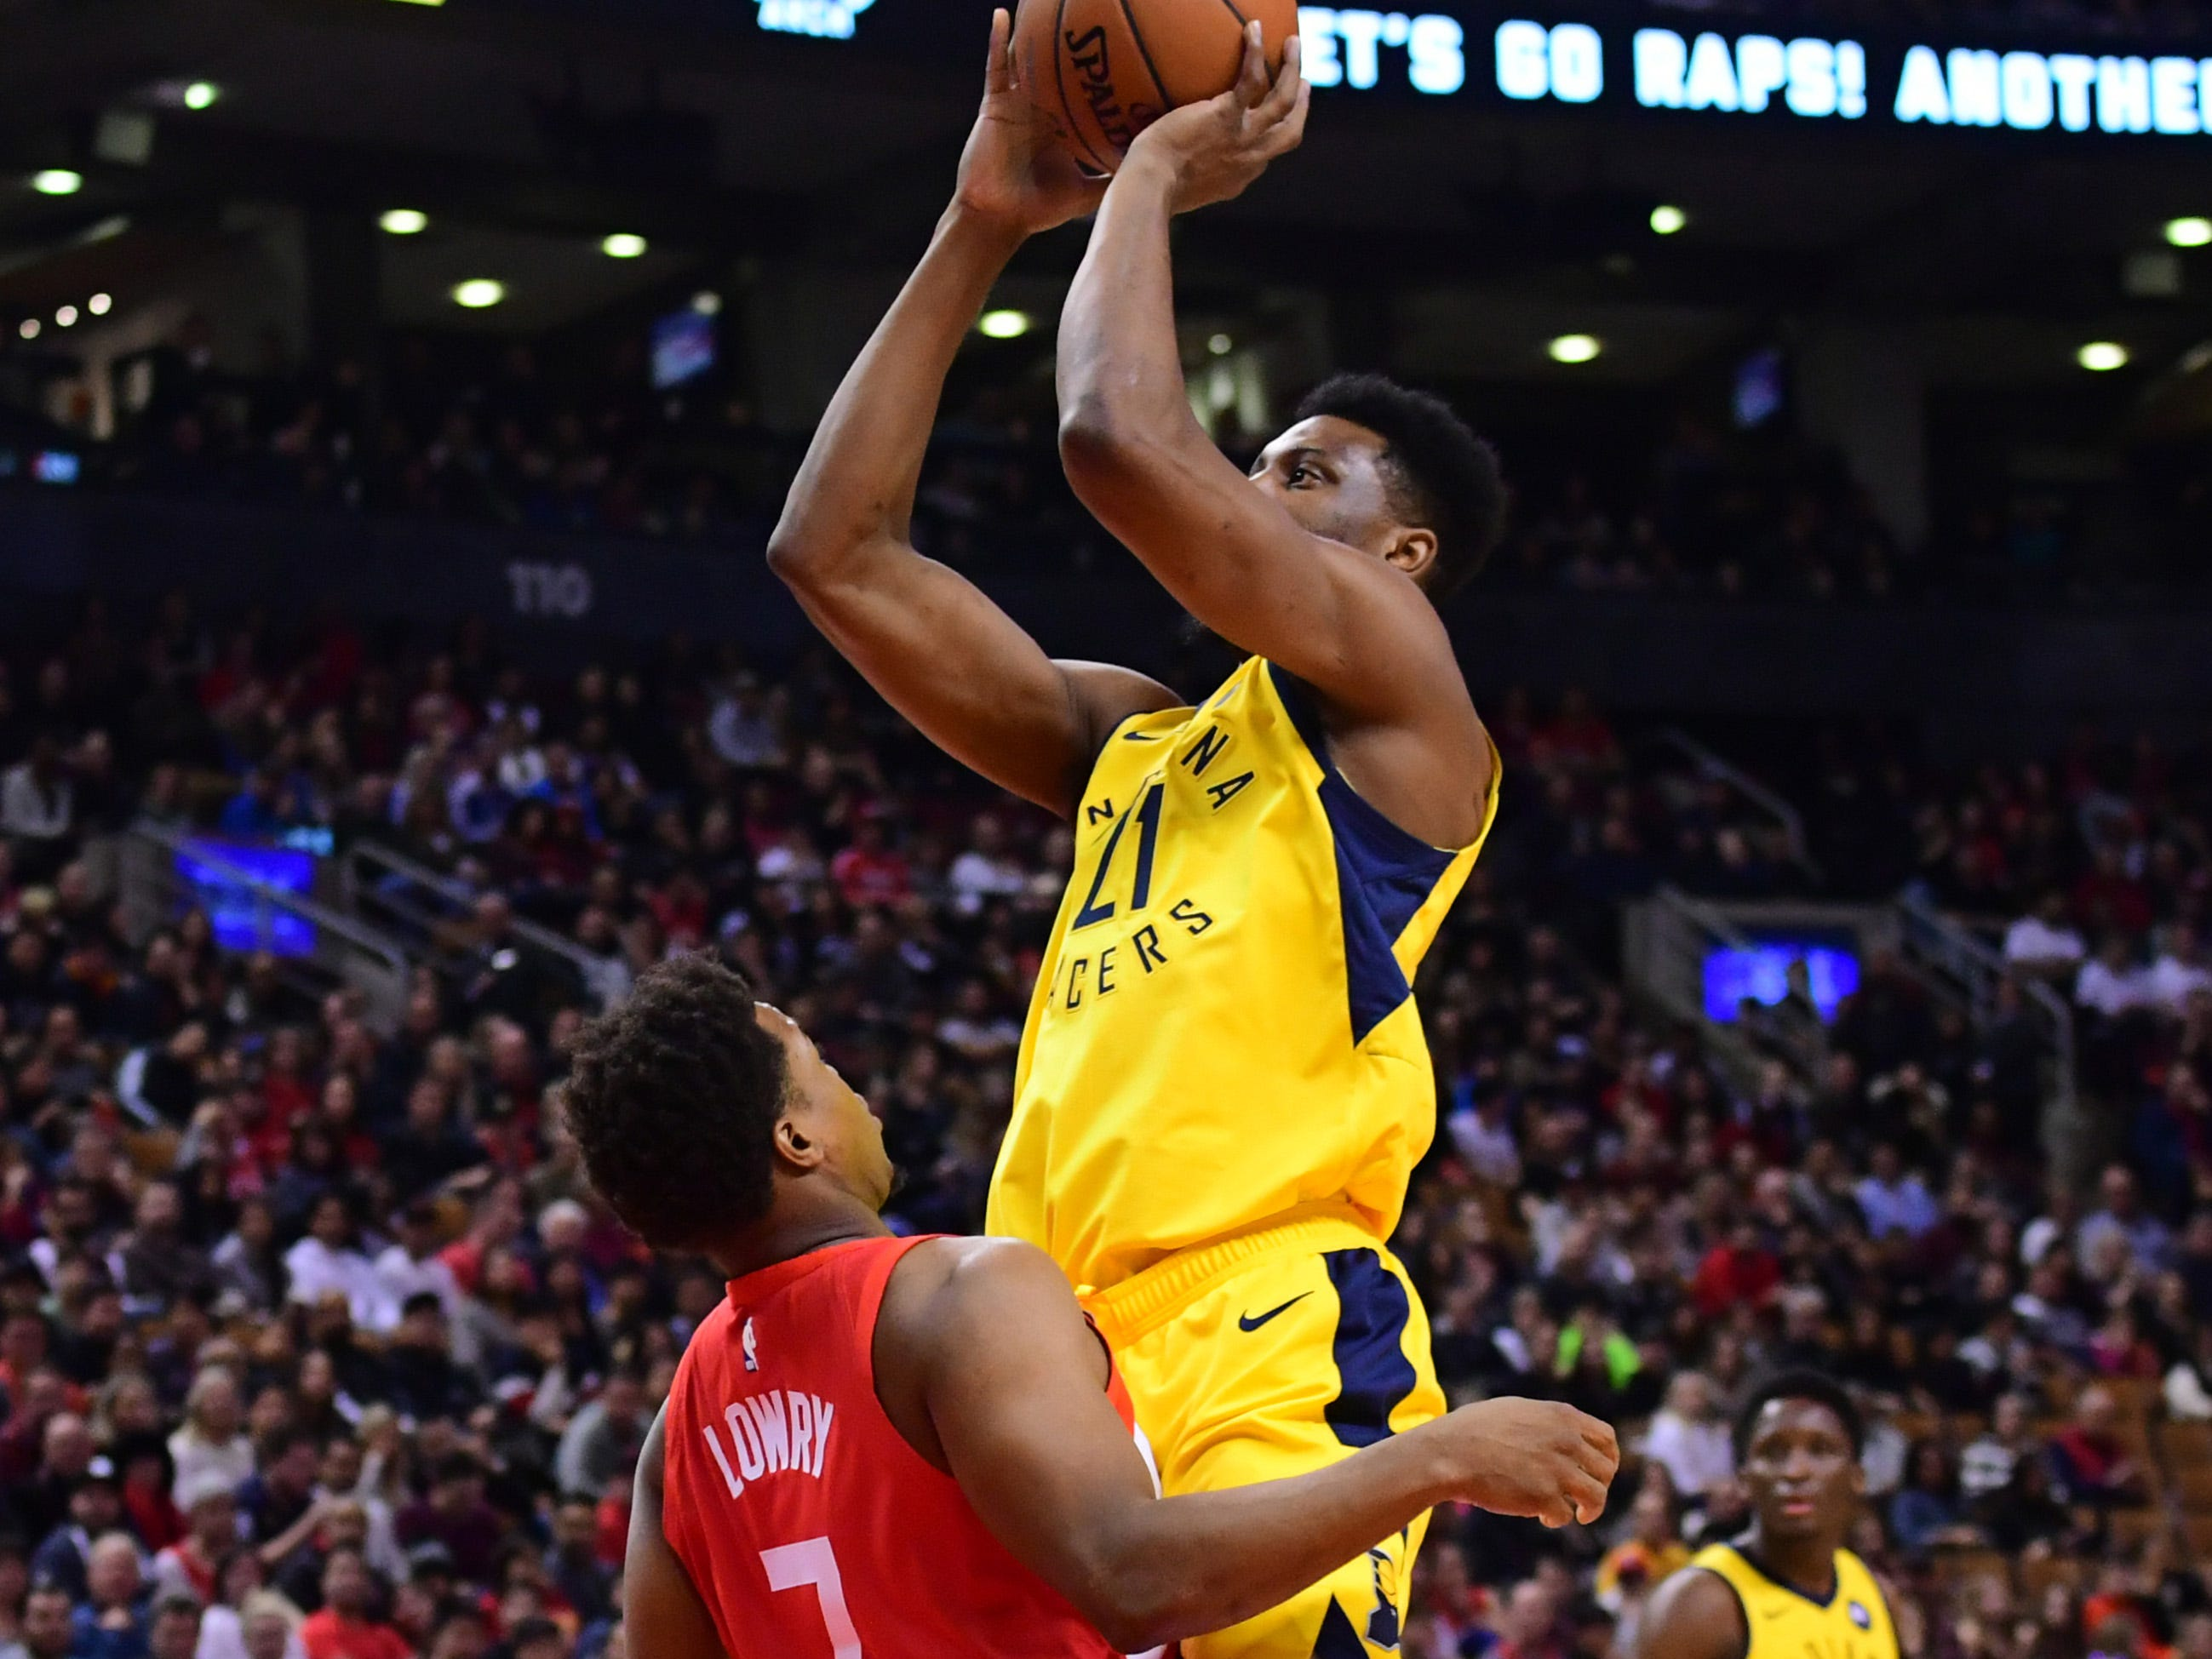 Jan 6, 2019; Toronto, Ontario, CAN; Indiana Pacers forward Thaddeus Young (21) takes a shot over Toronto Raptors guard Kyle Lowry (7) during the first quarteragainst the Indiana Pacers at Scotiabank Arena.